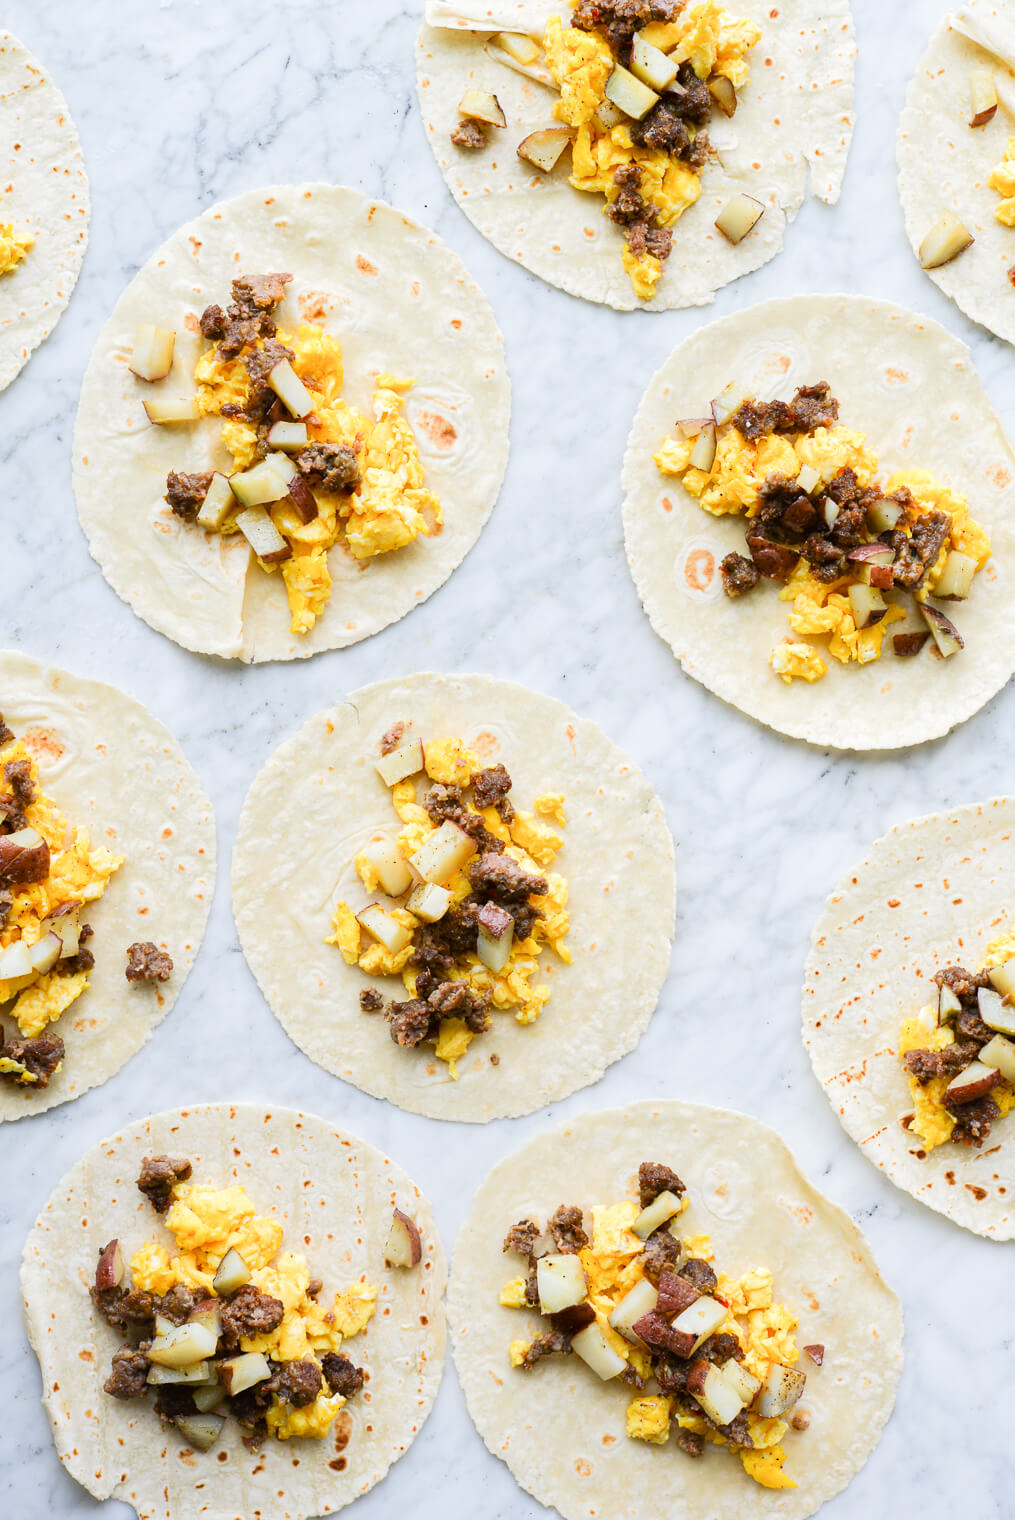 open breakfast tacos filled with scrambled eggs, potatoes, and crumbed breakfast sausage laying on a marble surface